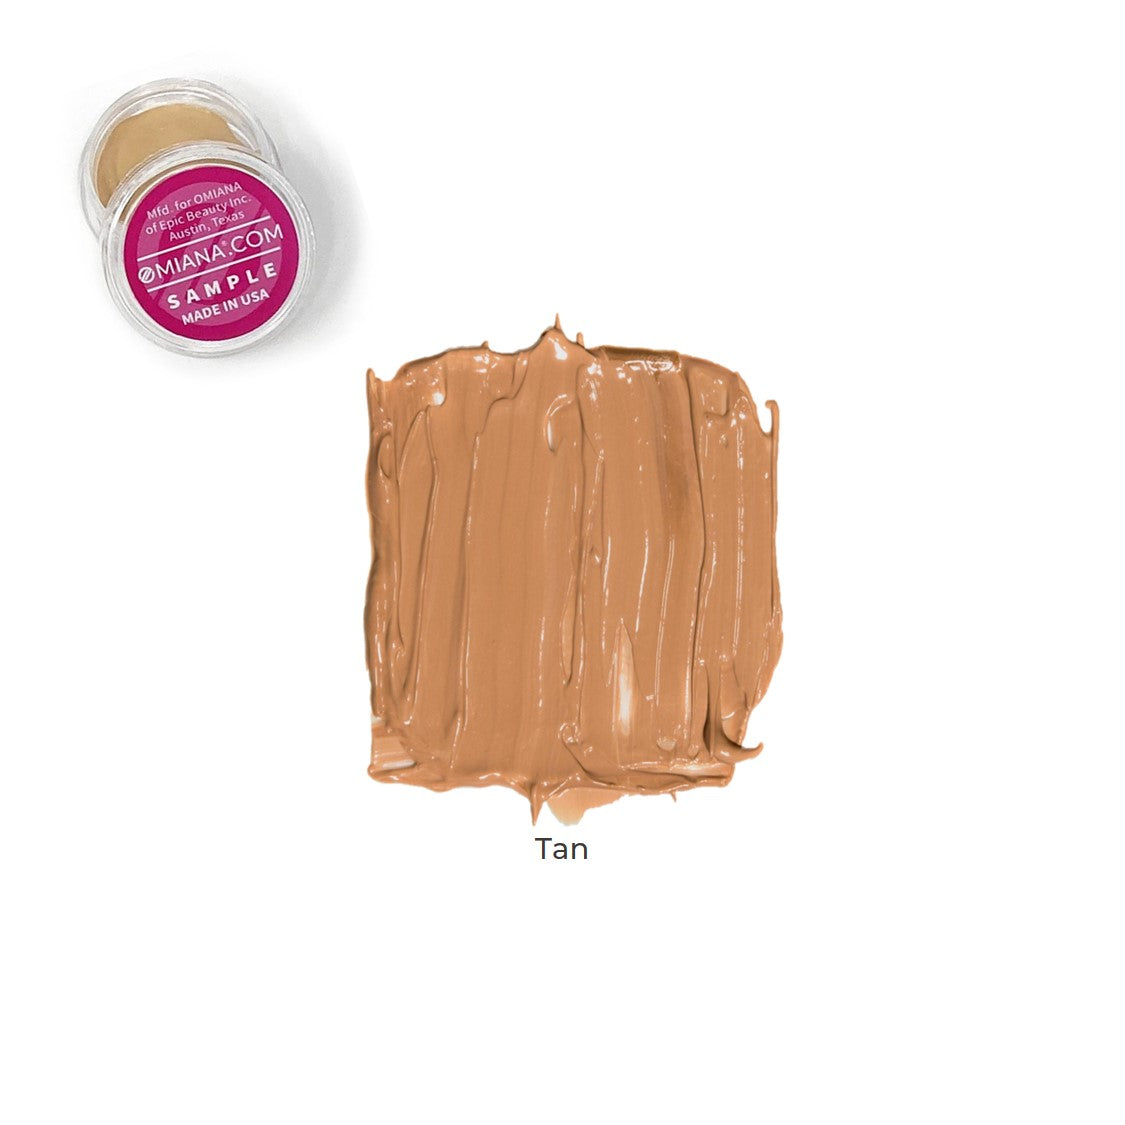 Velvet Matte Liquid Foundation Sample - Tan